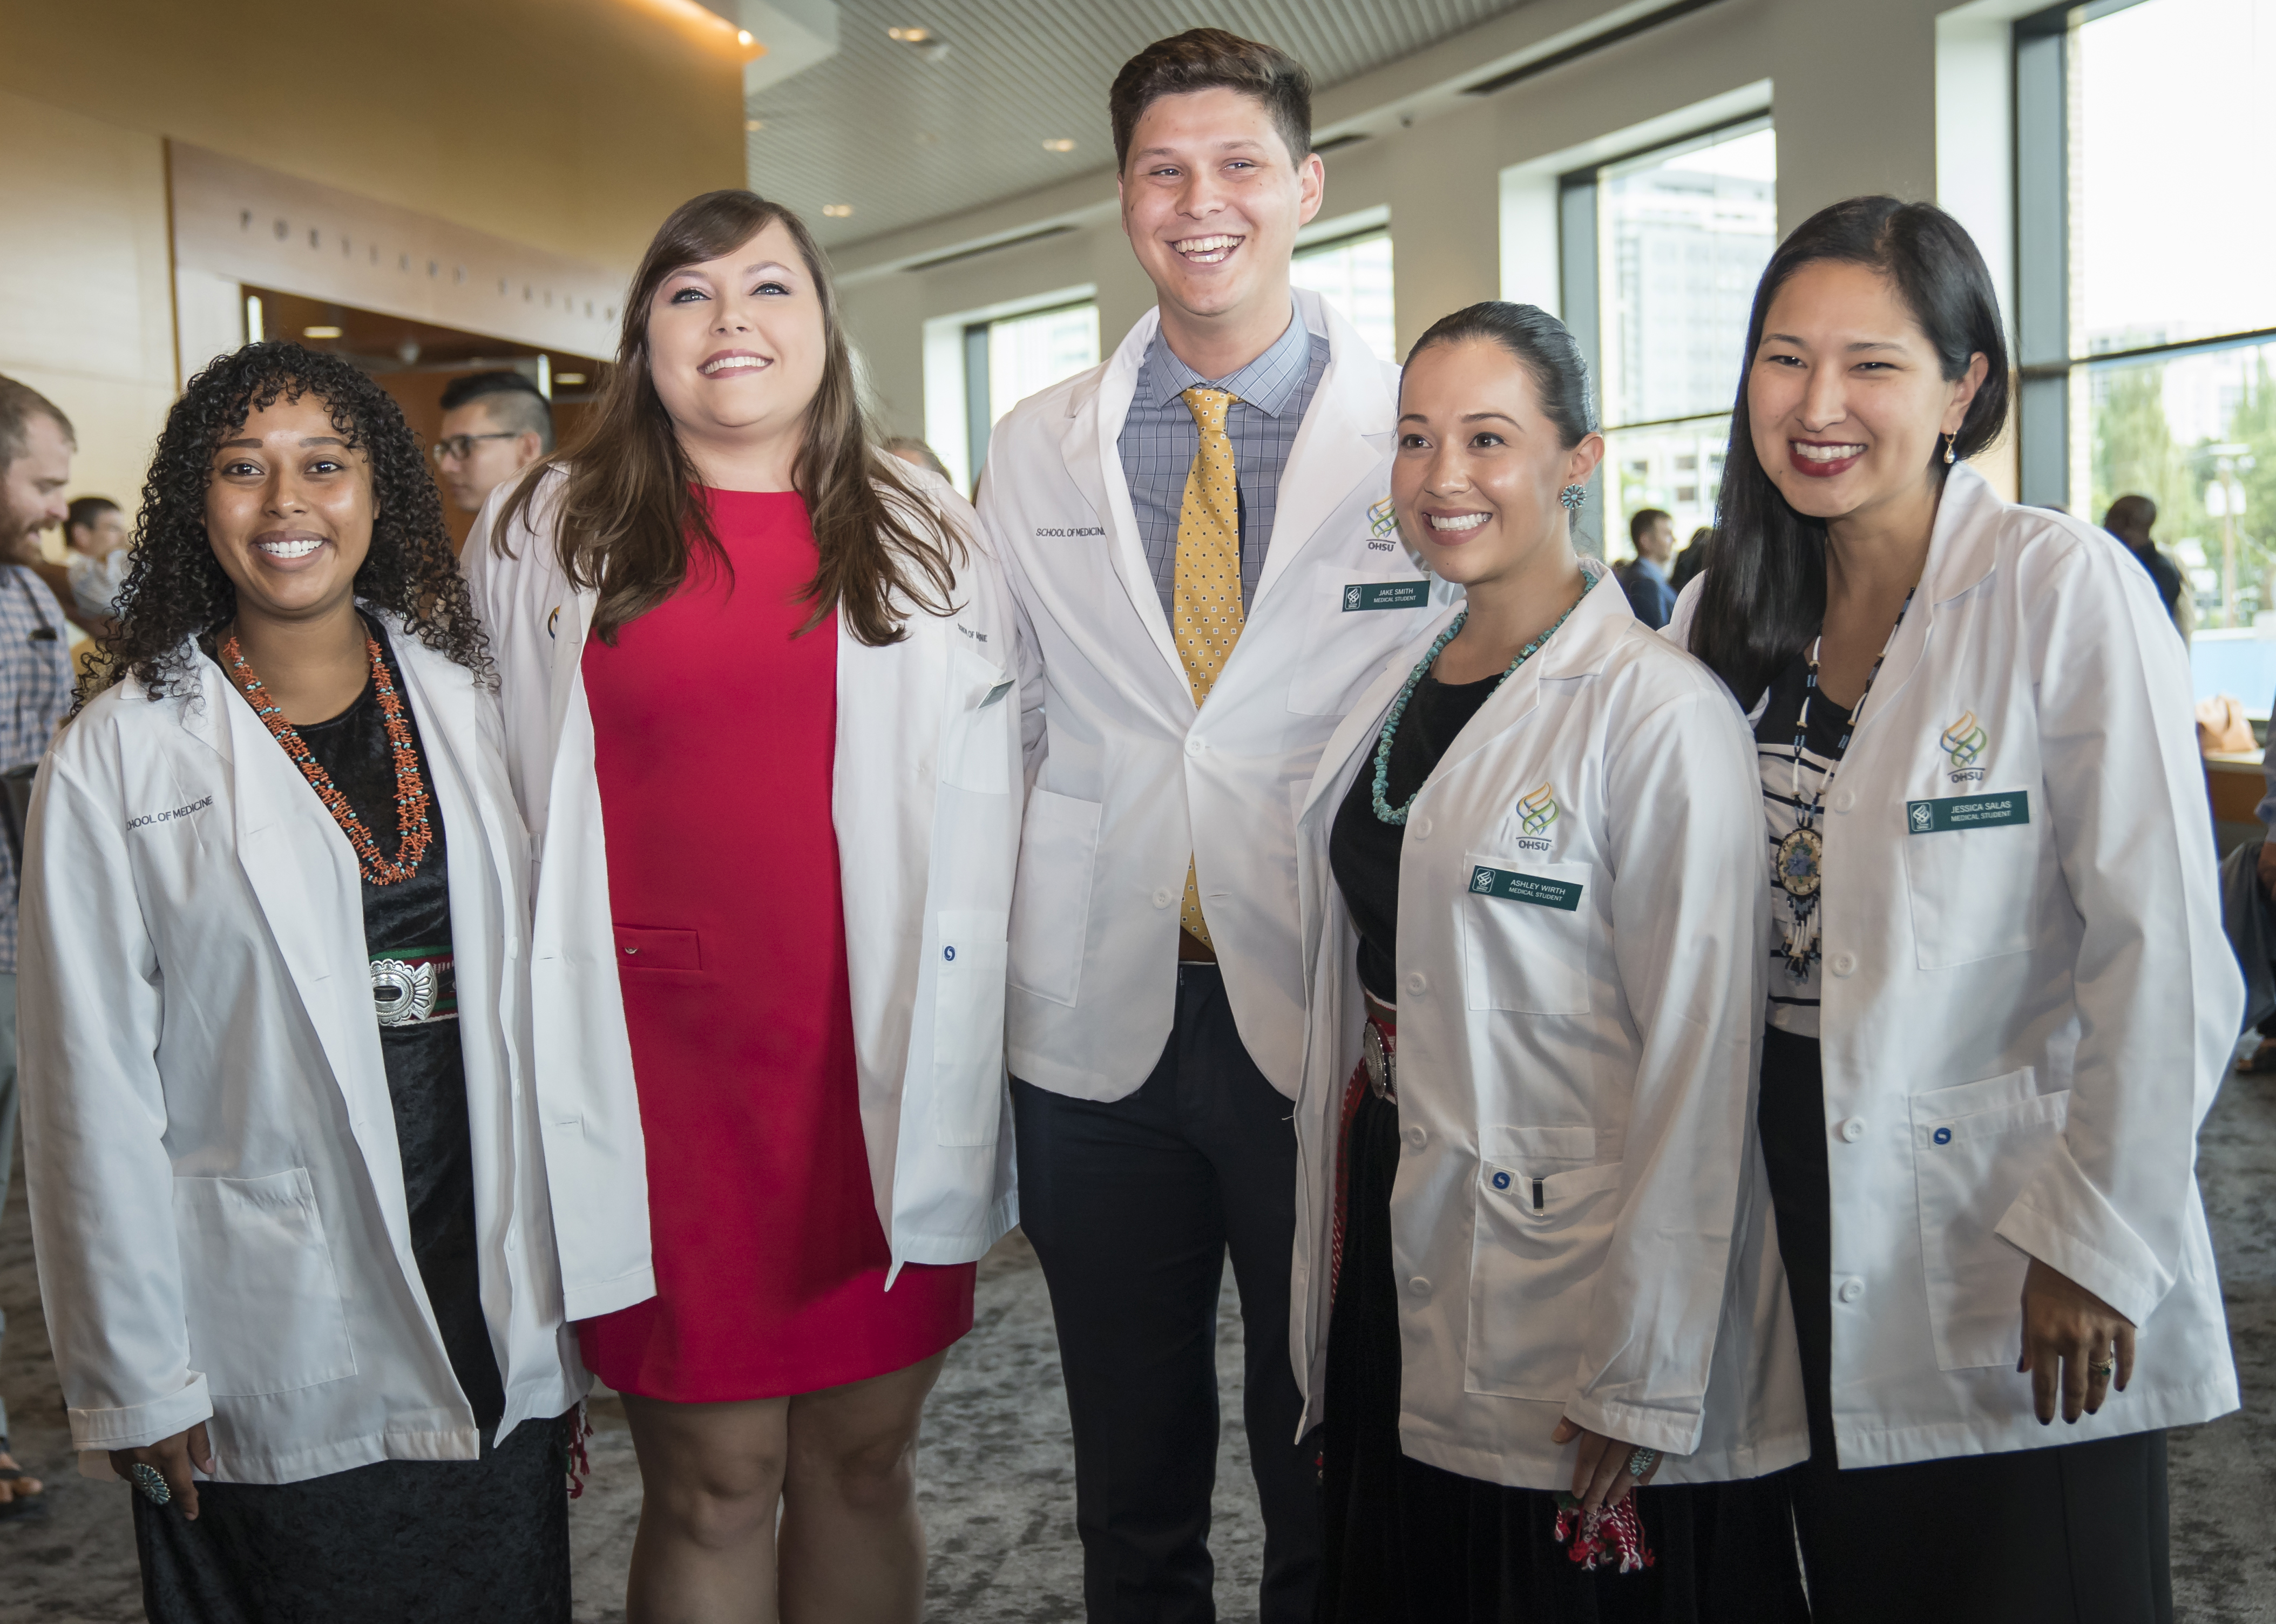 five native american students, wearing white coats and smiling at camera